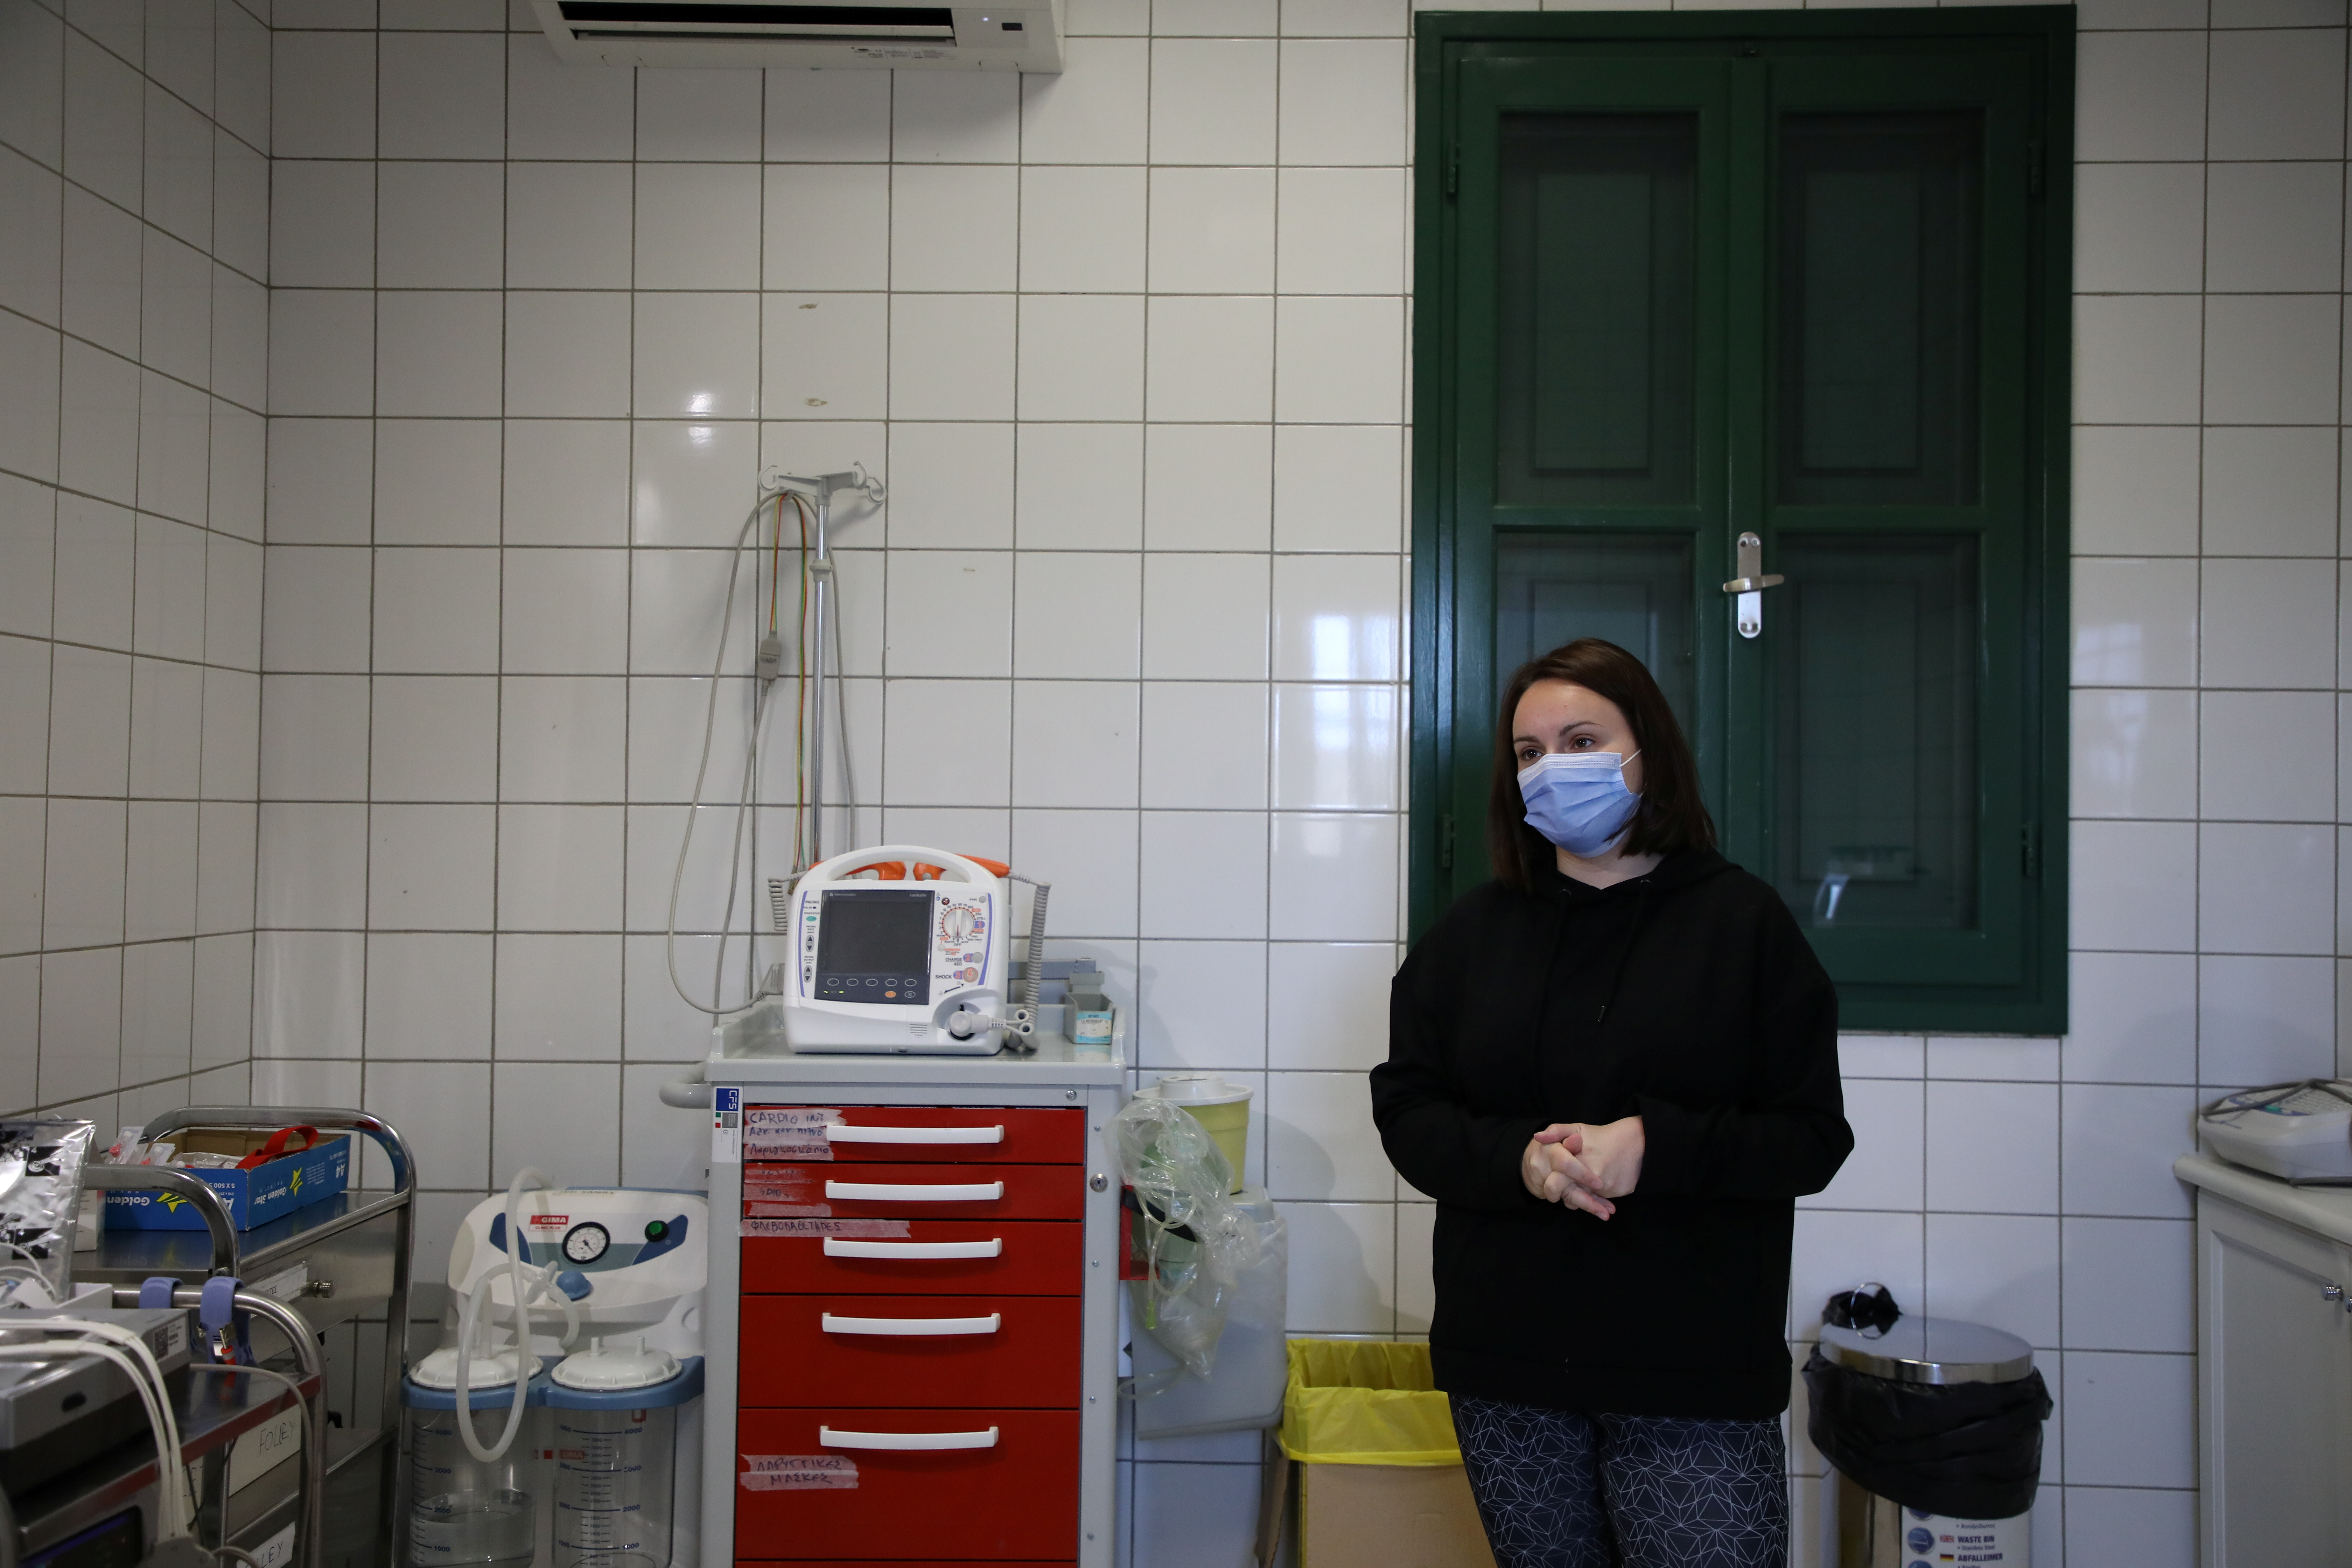 Athena Arvanitidou, Halki's only doctor, stands in the multi-clinic of the island, amid the coronavirus disease (COVID-19) pandemic, on the island of Halki, Greece, April 13, 2021. REUTERS/Louiza Vradi